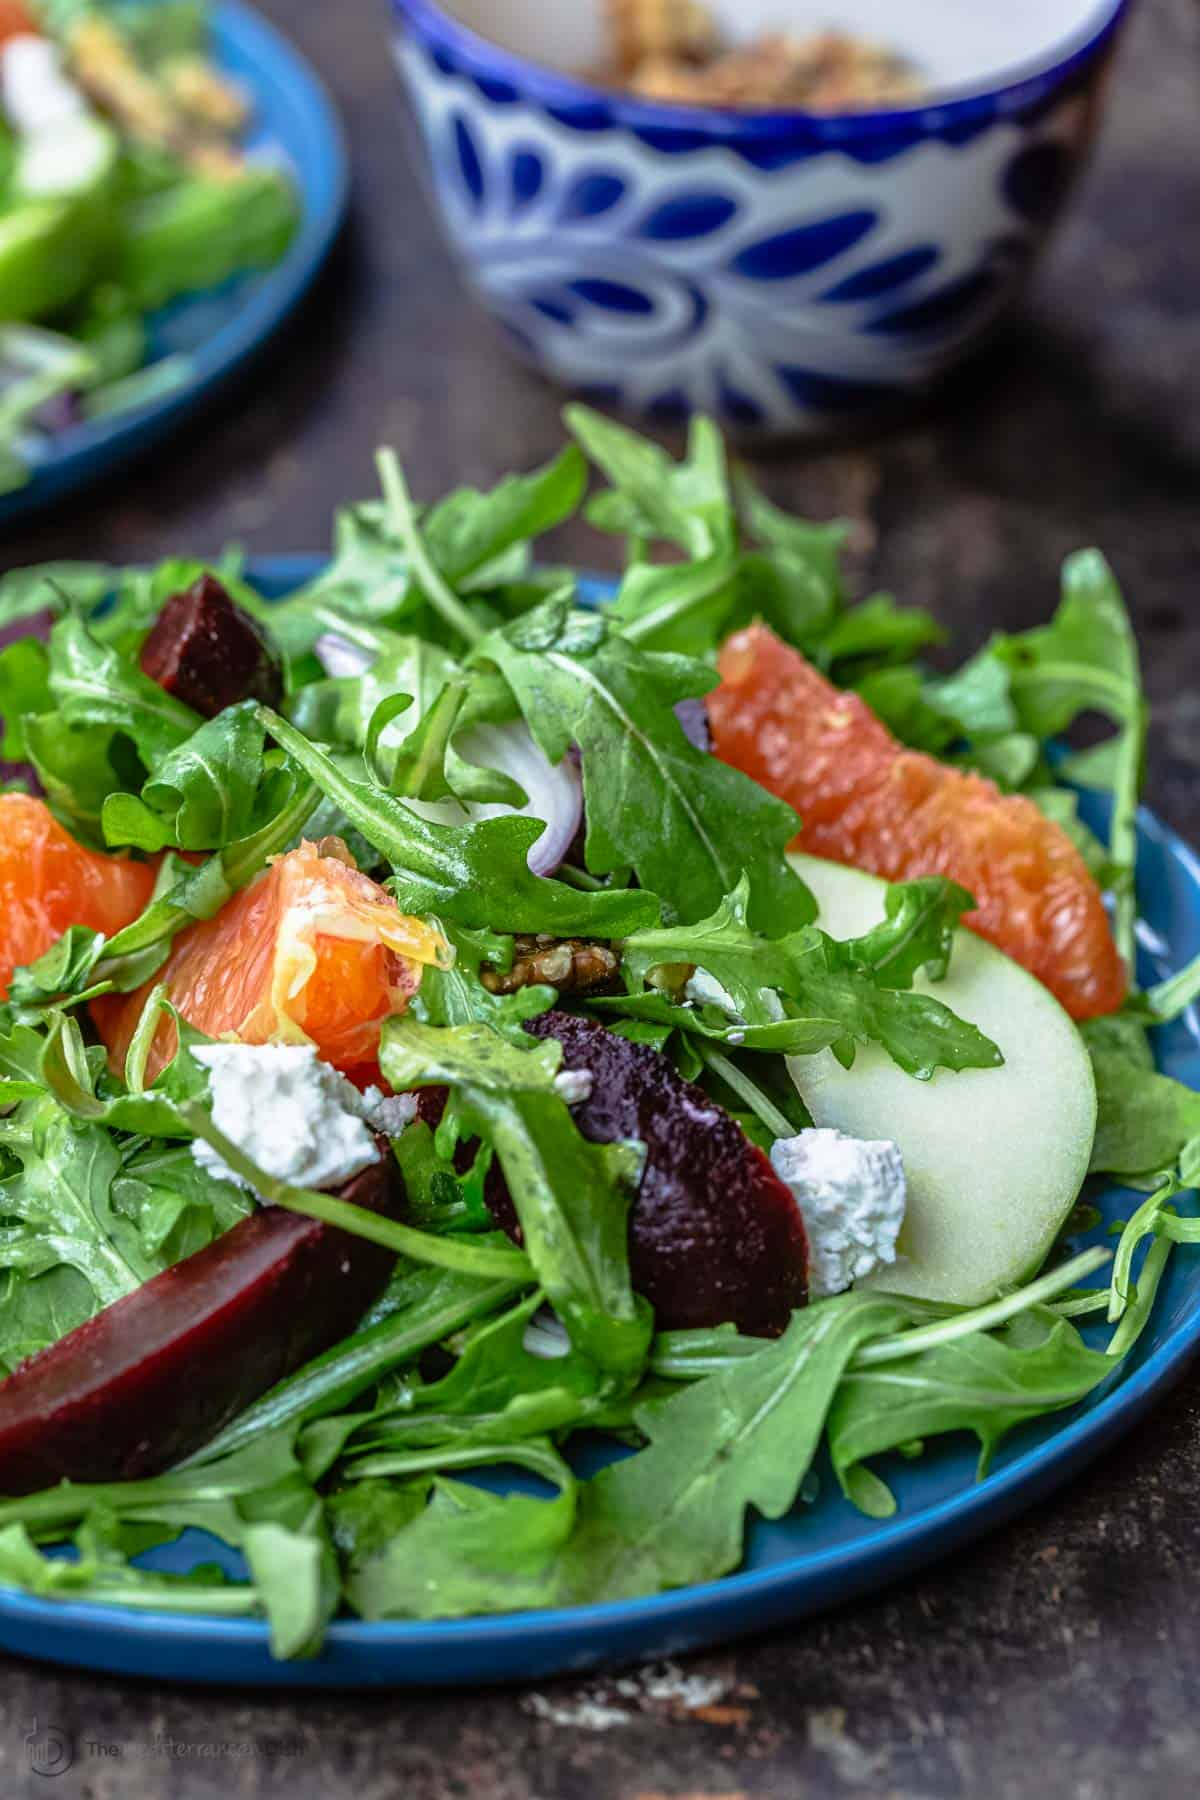 Beet salad with oranges and arugula